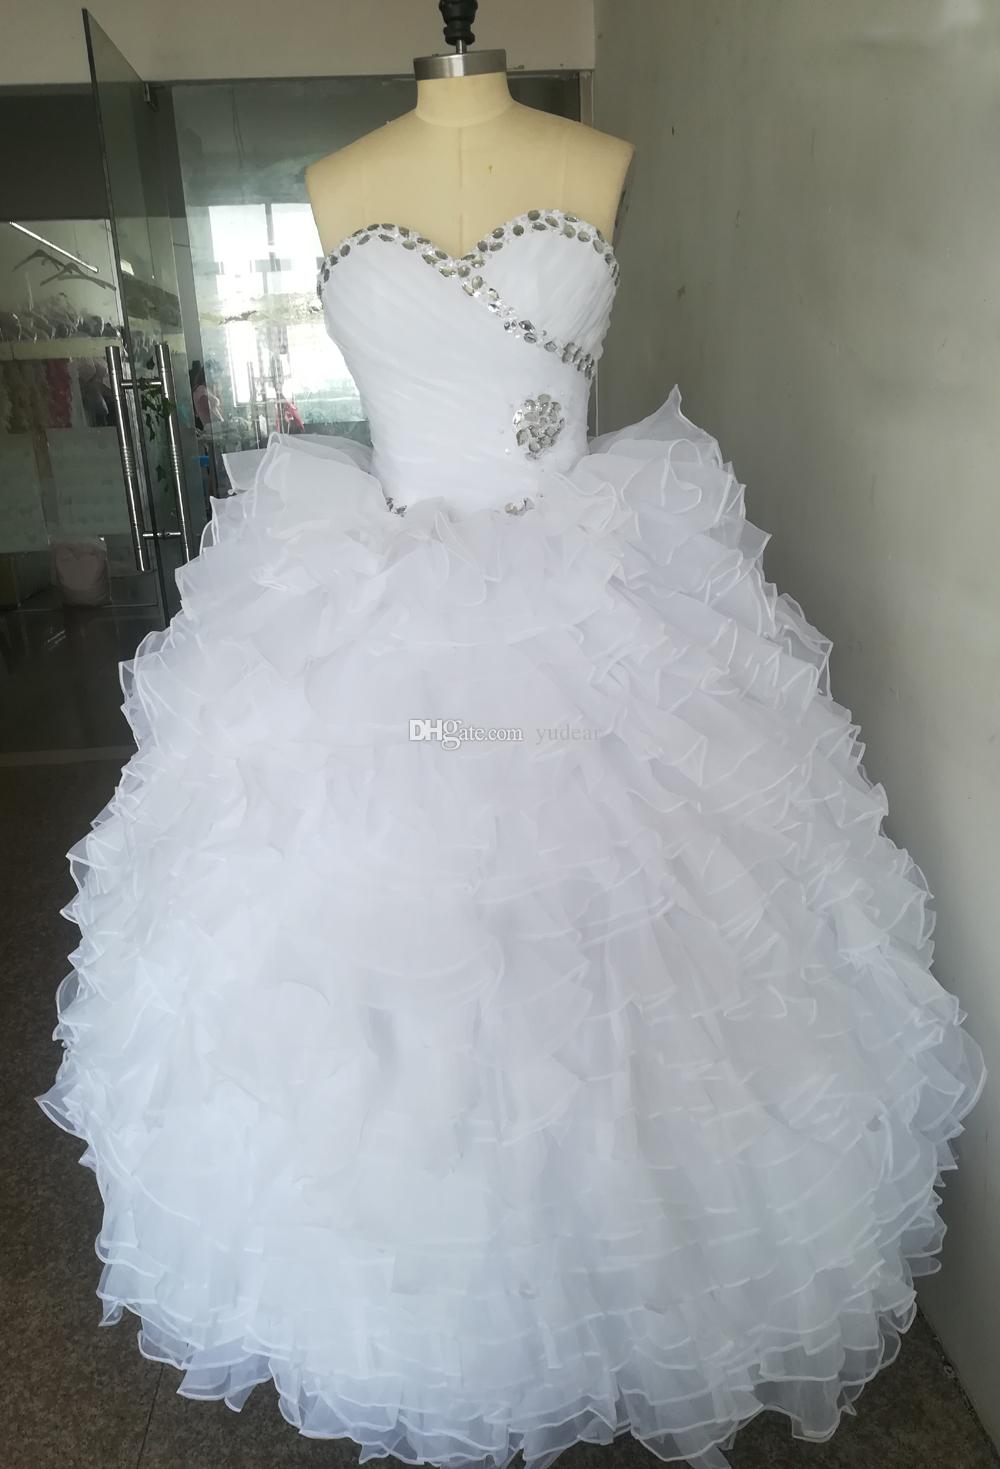 2019 New Good in Stock White Organza Quinceanera Dresses Sweet 15 Ball Gown Cascading Ruffles Prom Dresses Draped and Rhinestones Party Gown